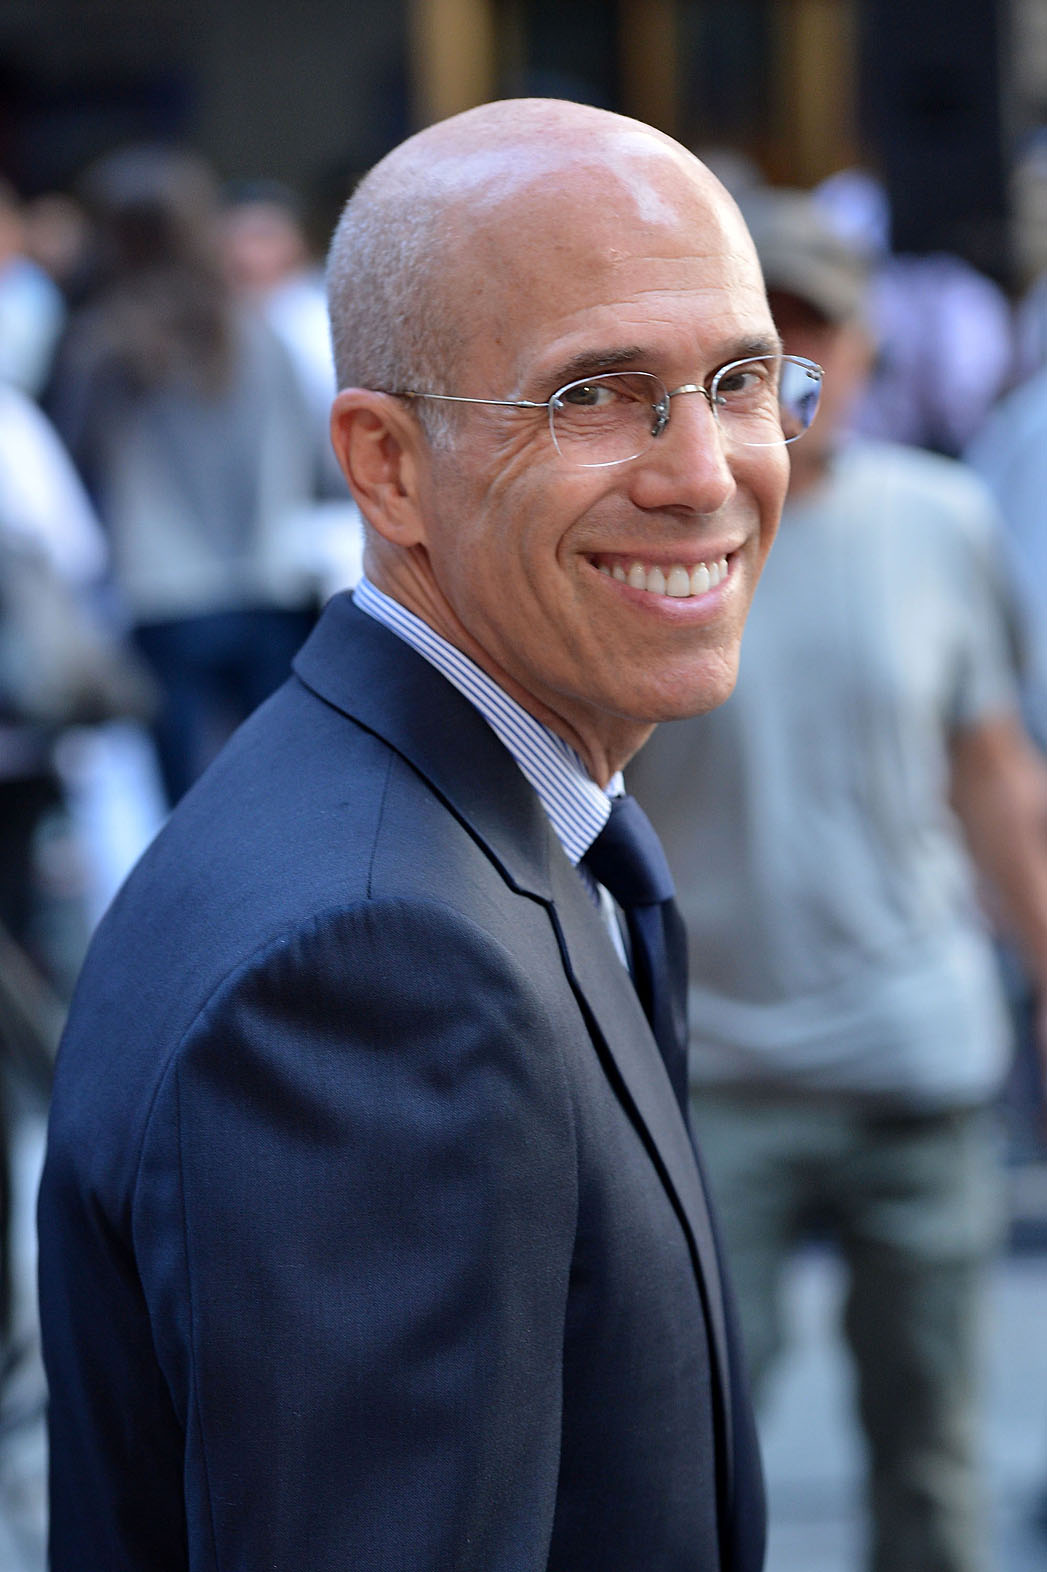 Jeffrey Katzenberg's quote #6